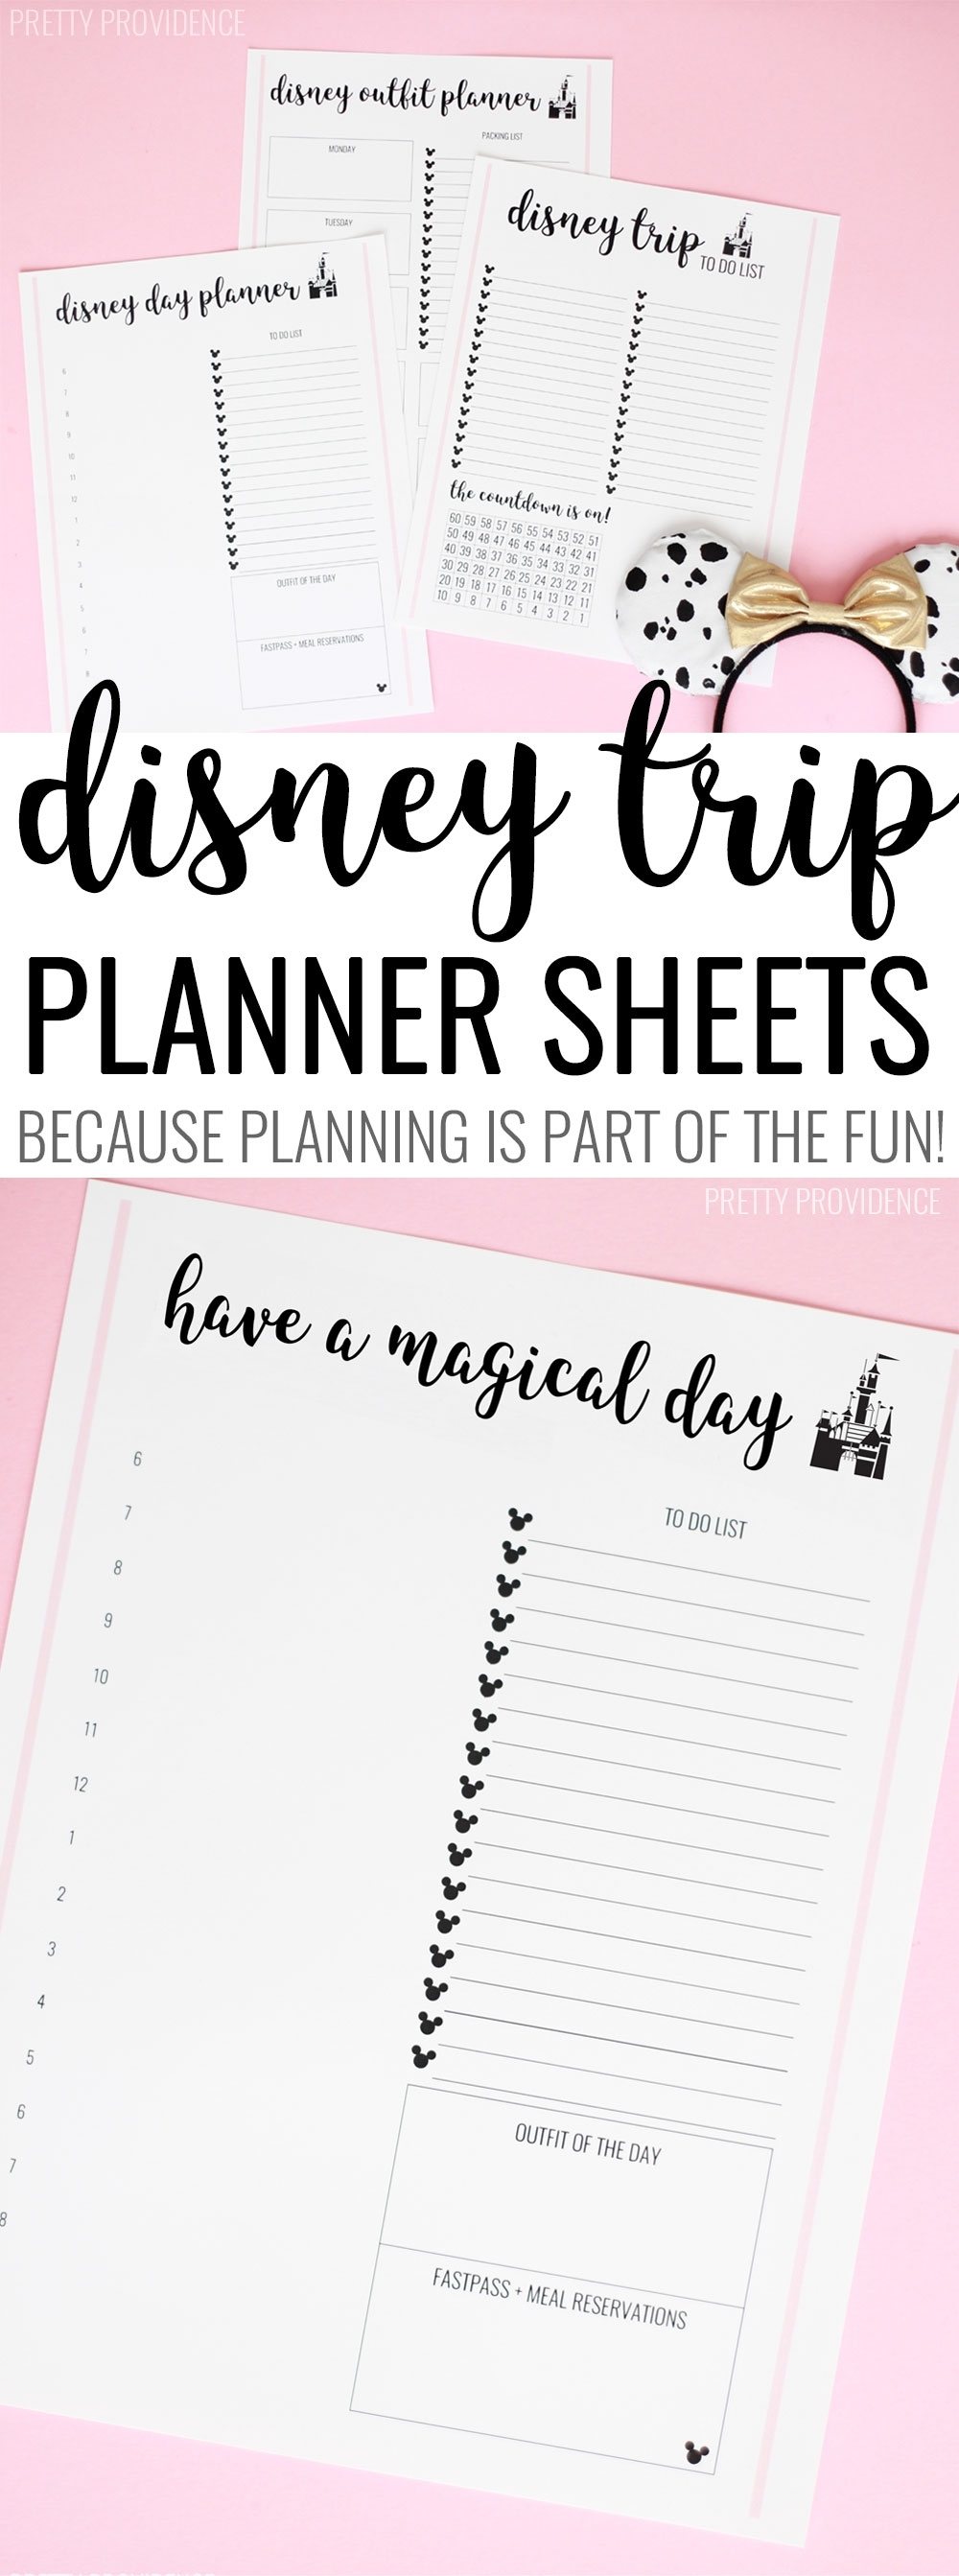 Disney Trip Planner Sheets - Pretty Providence with Disney World Printable Planning Sheets